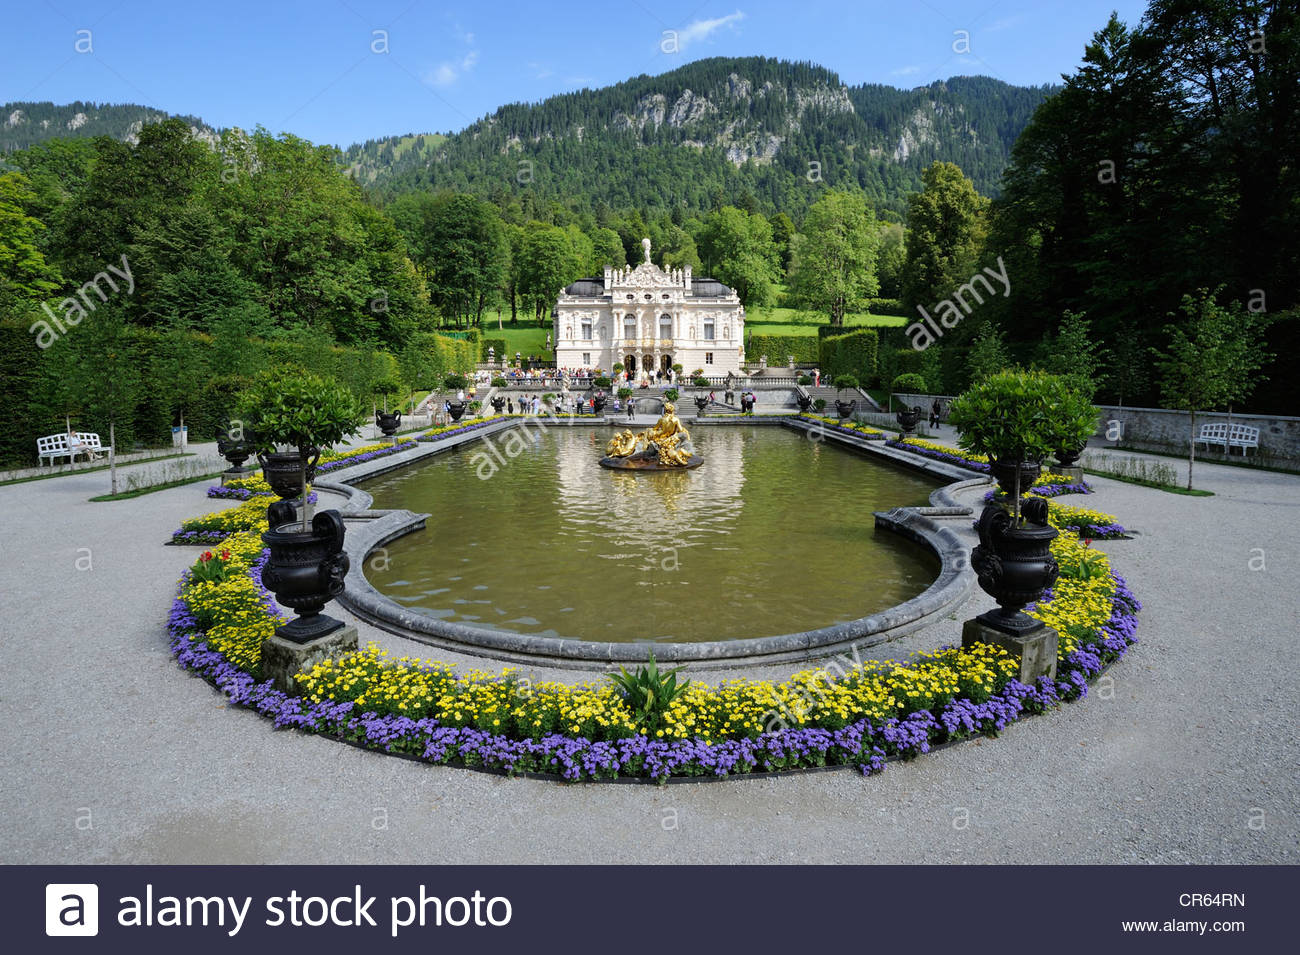 Schloss Linderhof The Bavarian Alps, Schloss Linderhof Castle of King Ludwig II of Bavaria, Graswangtal ...